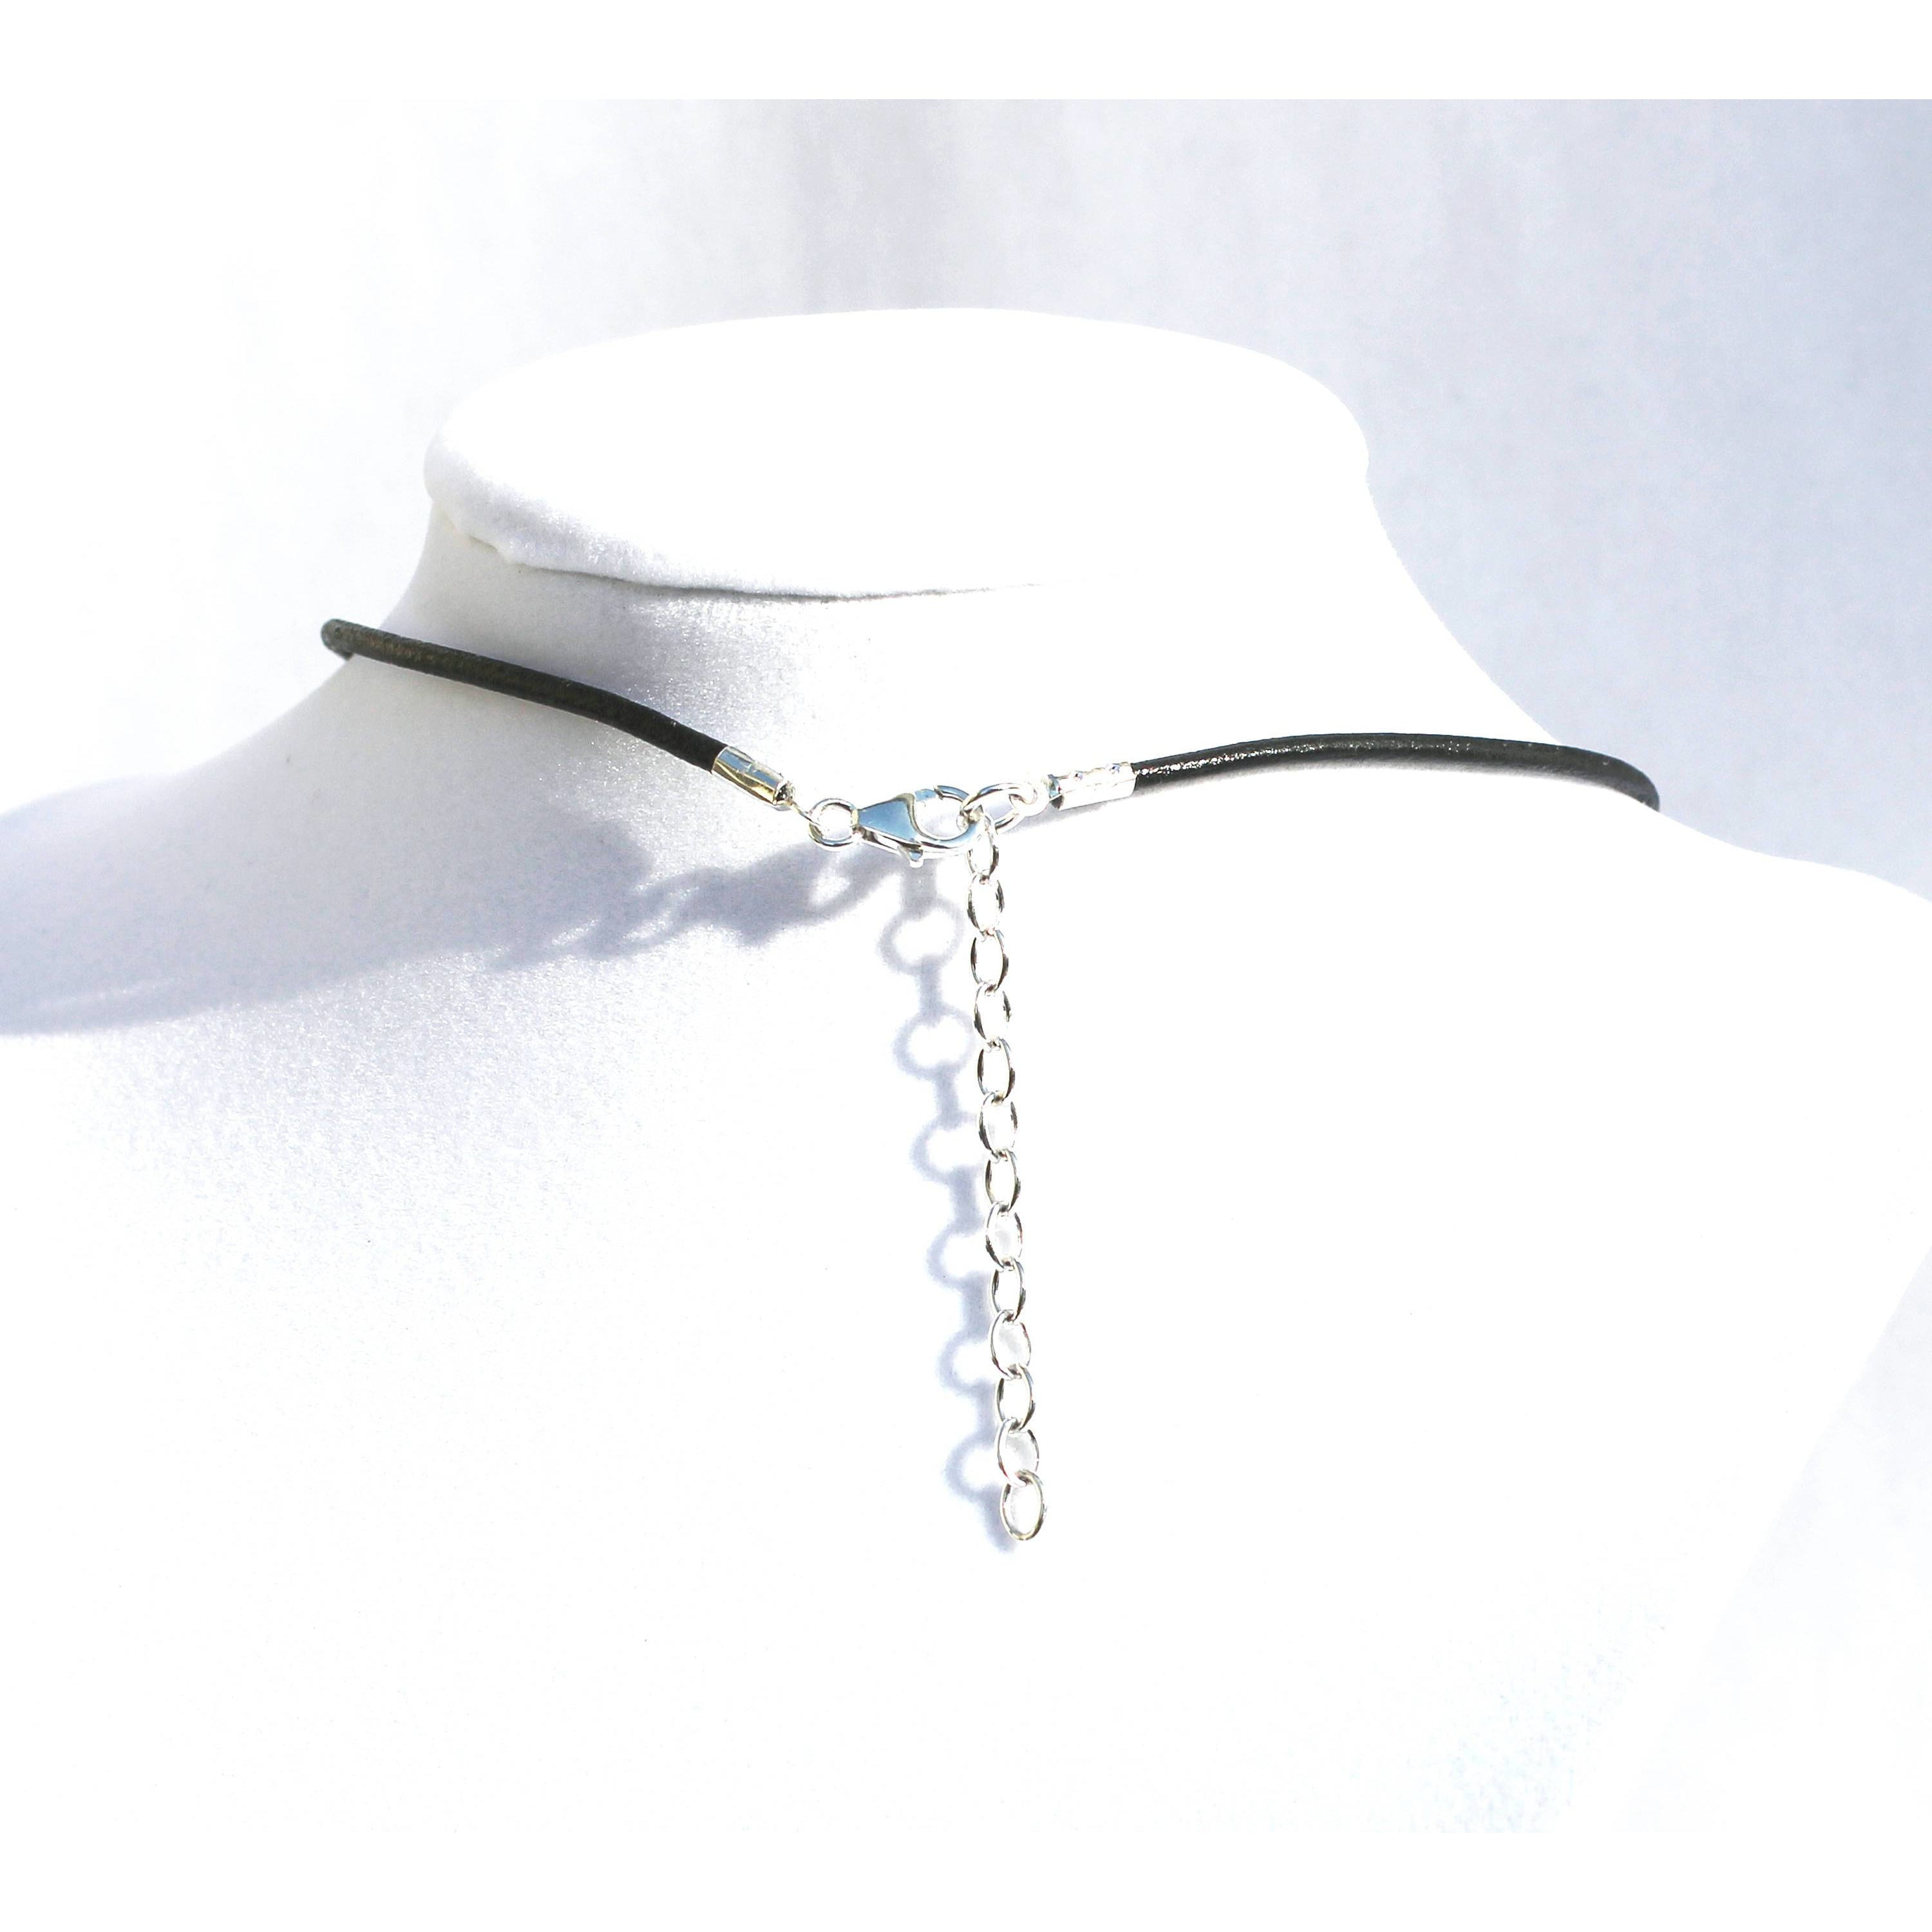 Discrete Day collar choker, Sterling Silver O Ring, Leather Cord, Unisex-Day Collar, Public Collar, Submissive Necklace